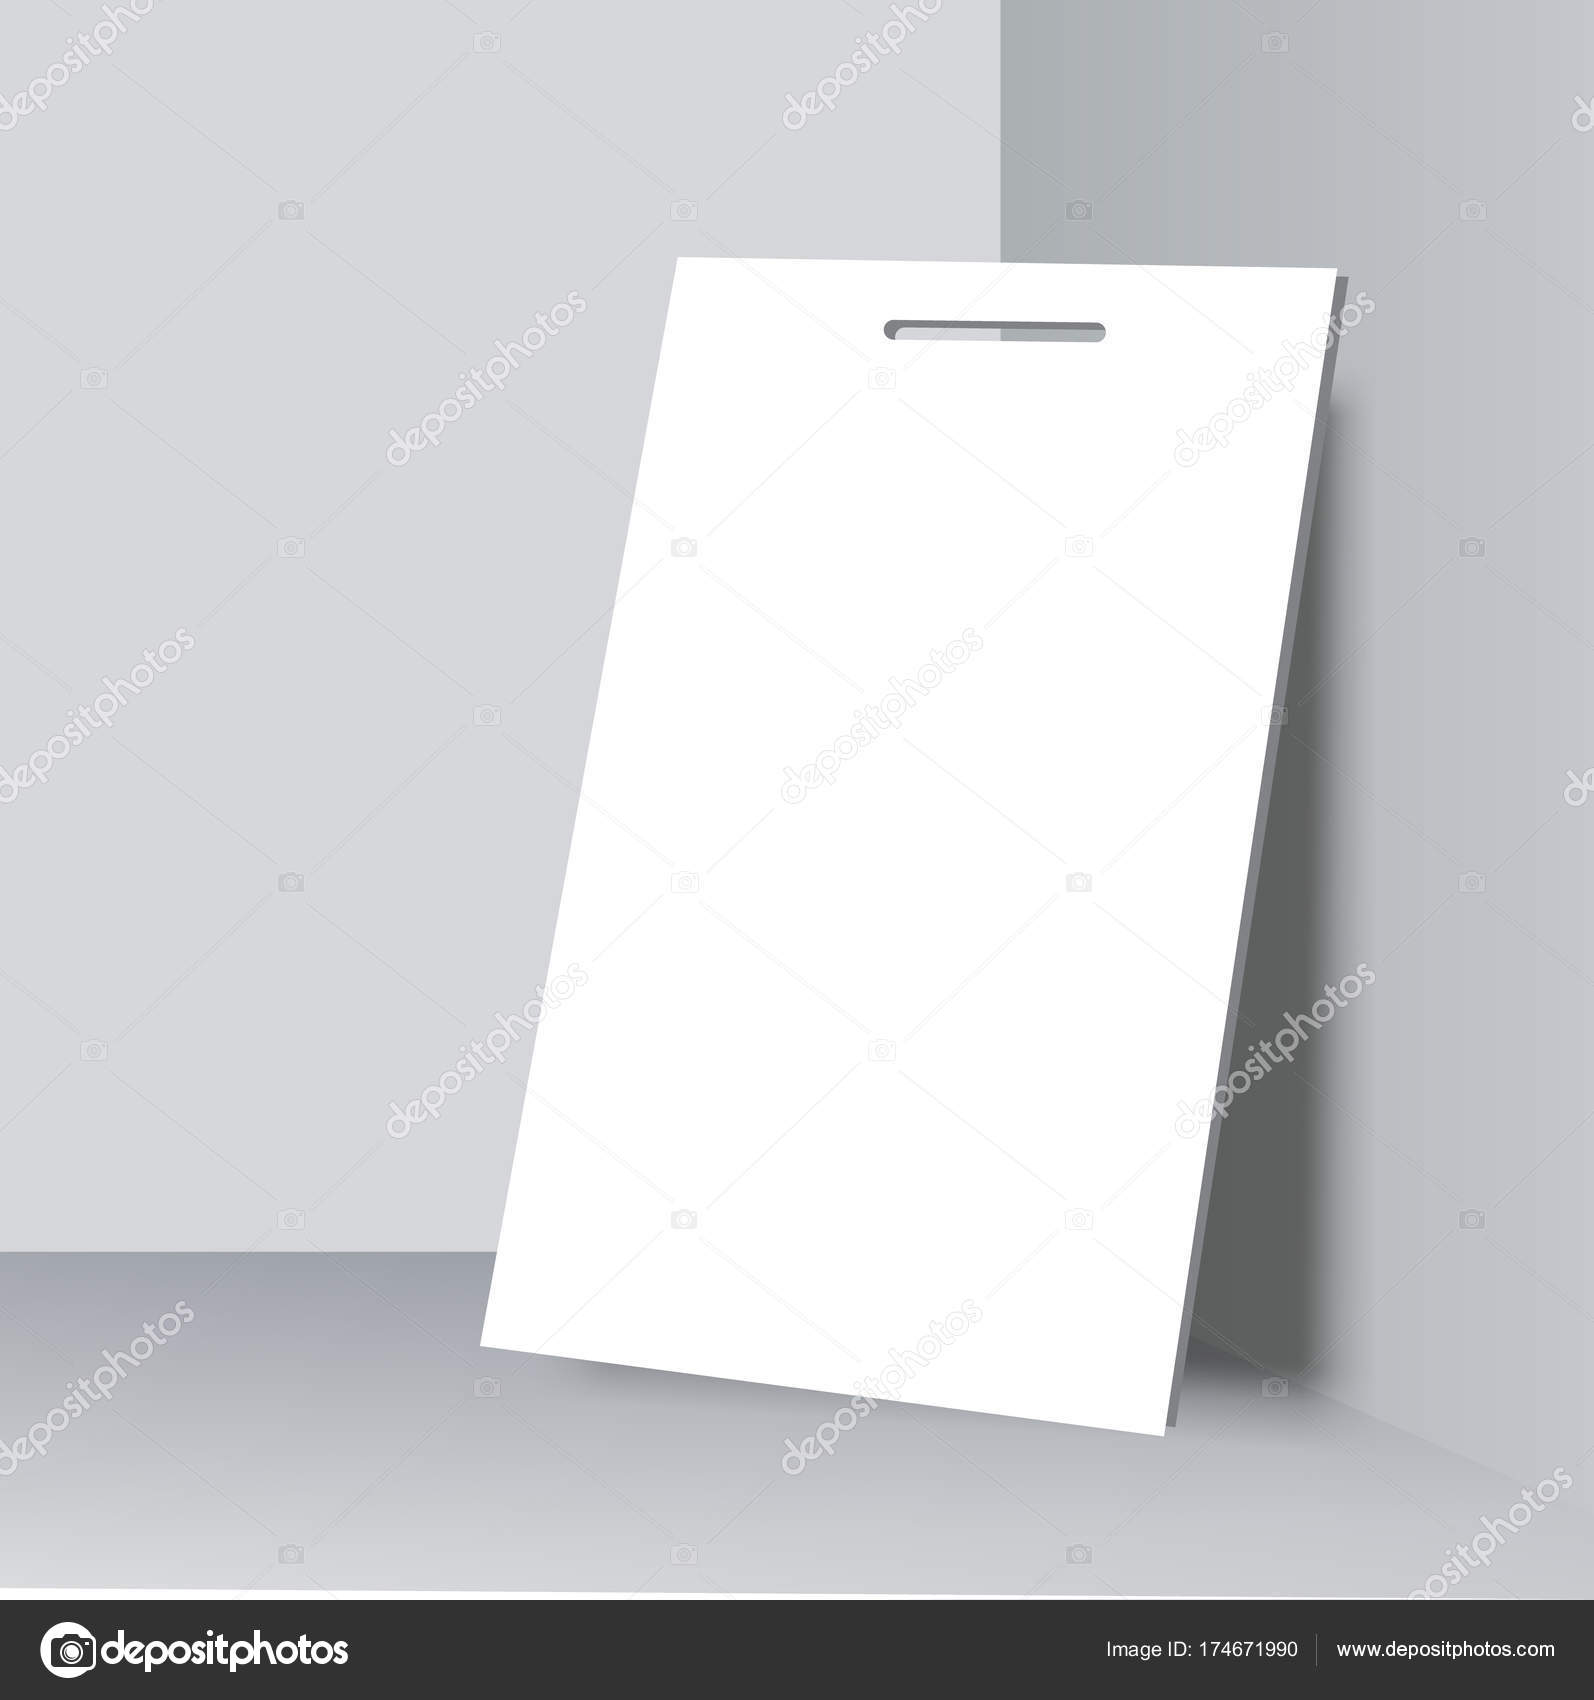 blank name tags mockup vector illustration of identity card badge